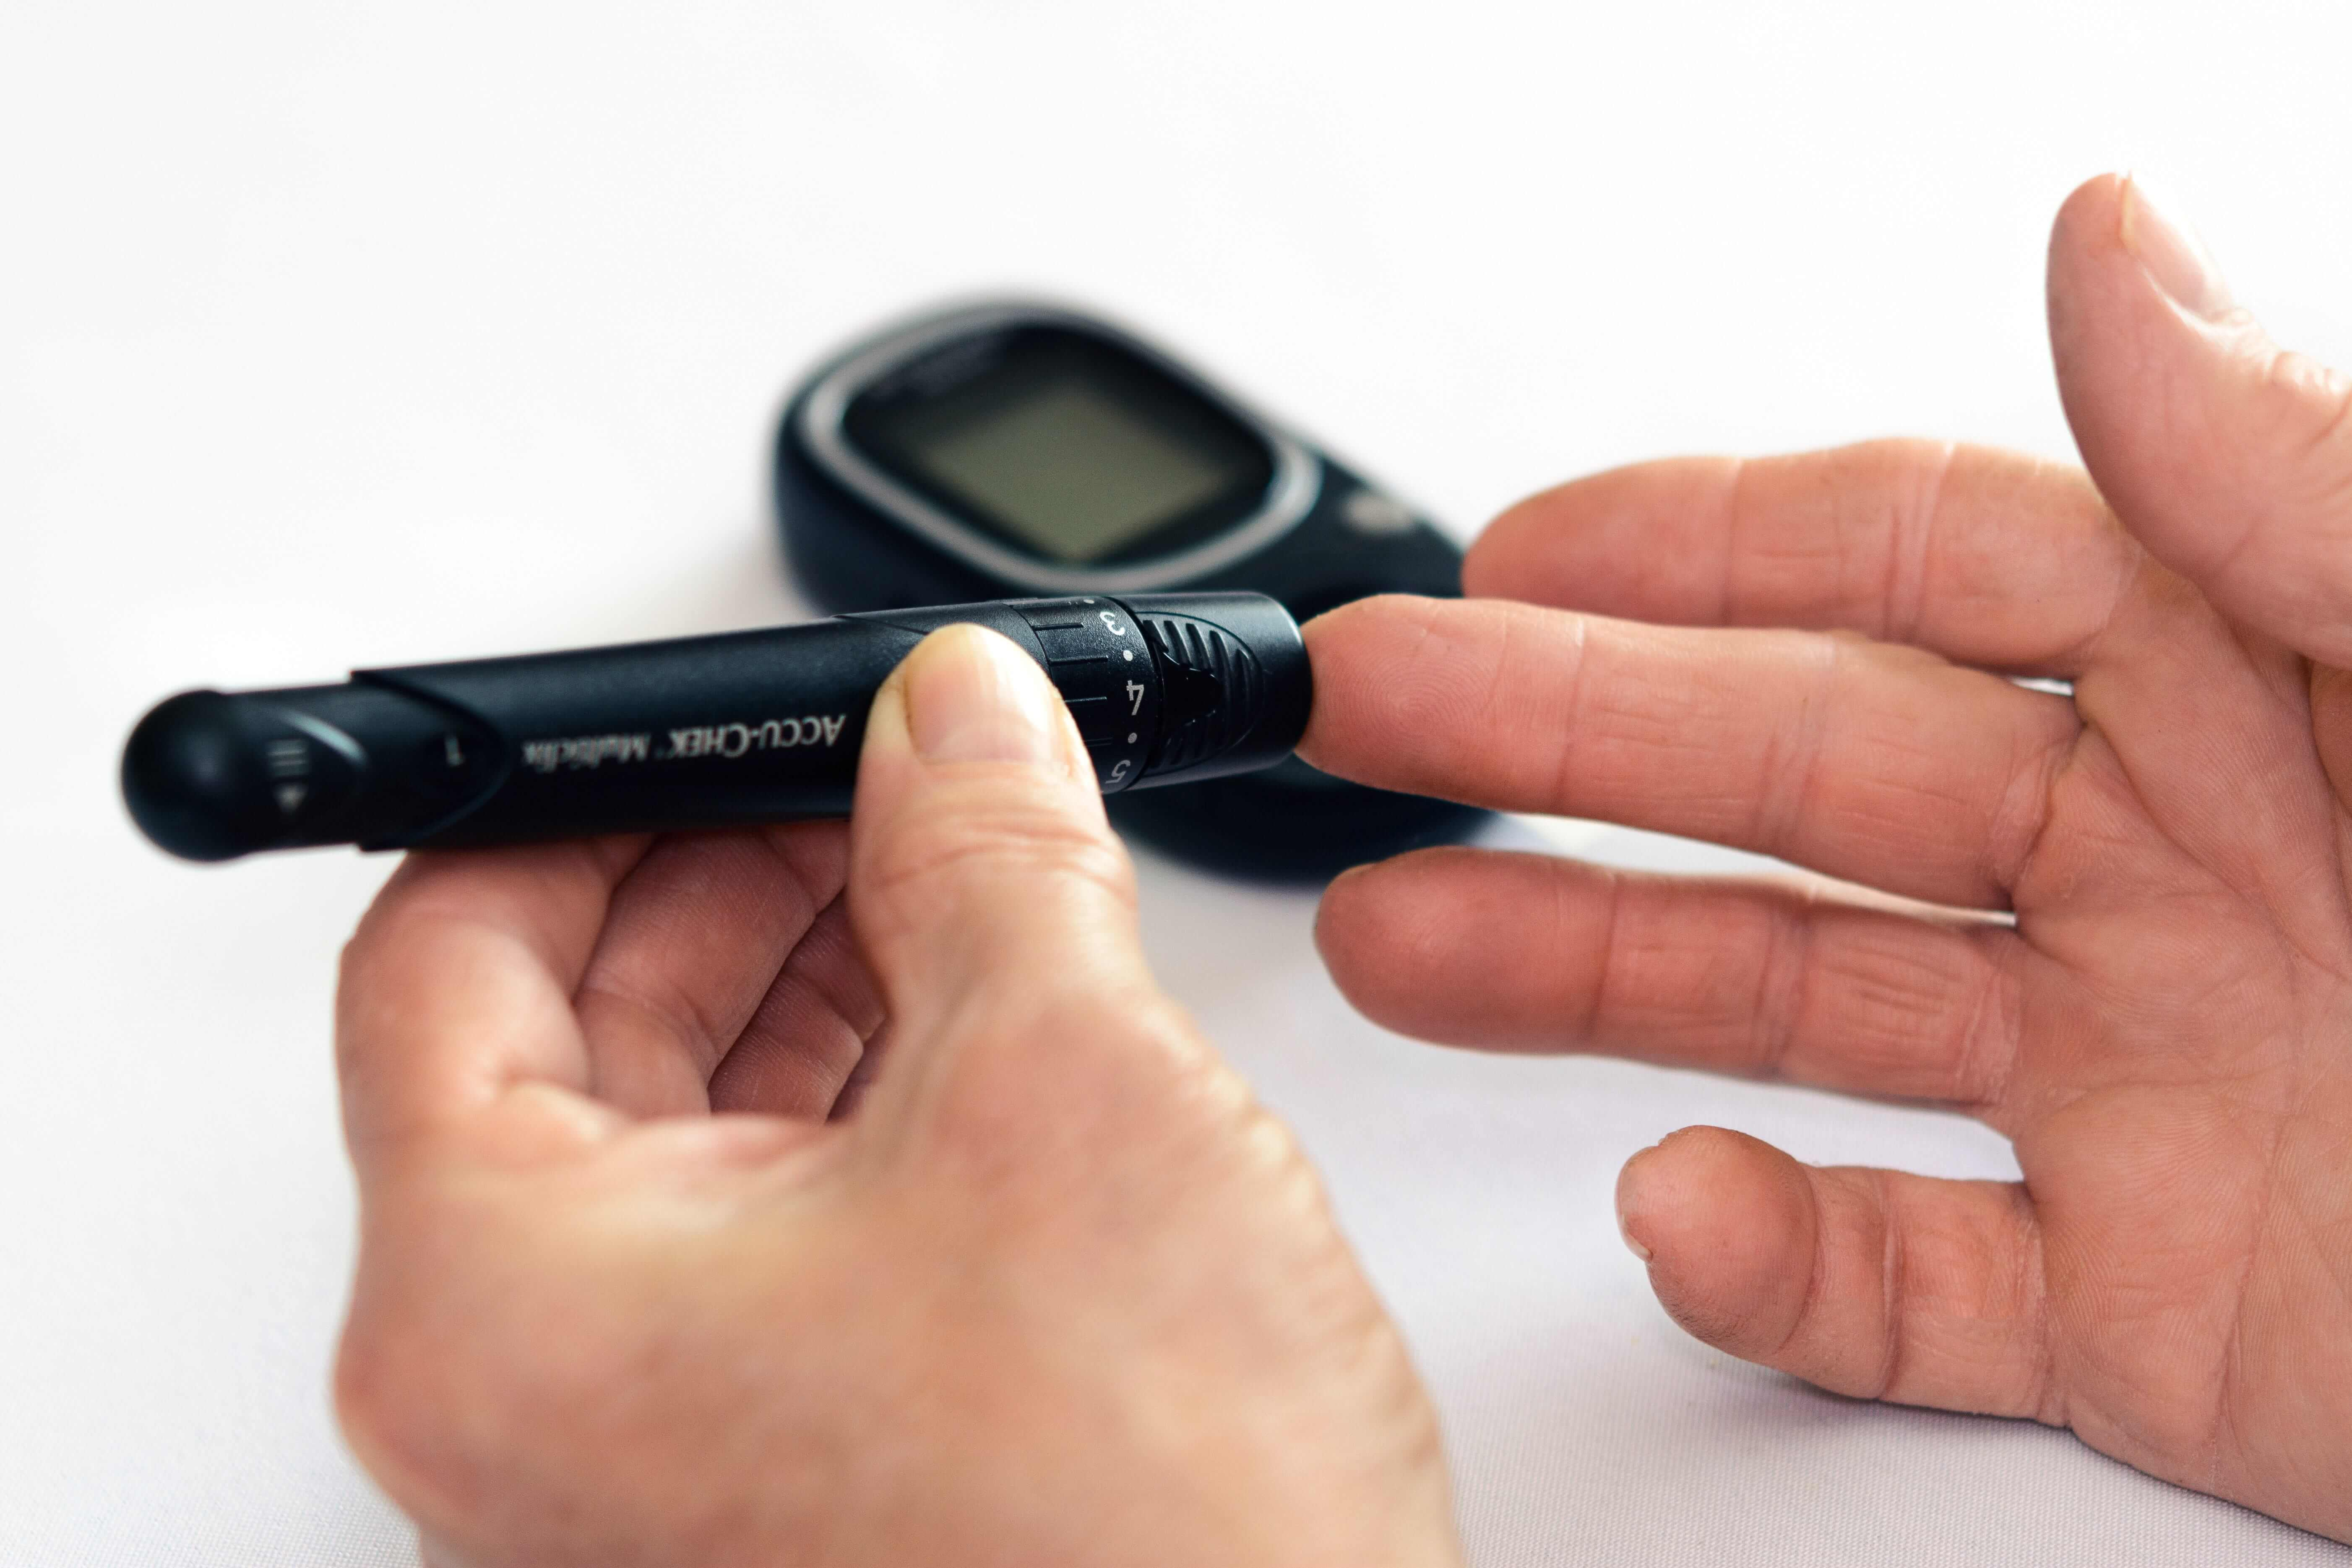 A lancet device being used on middle finger to test blood glucose